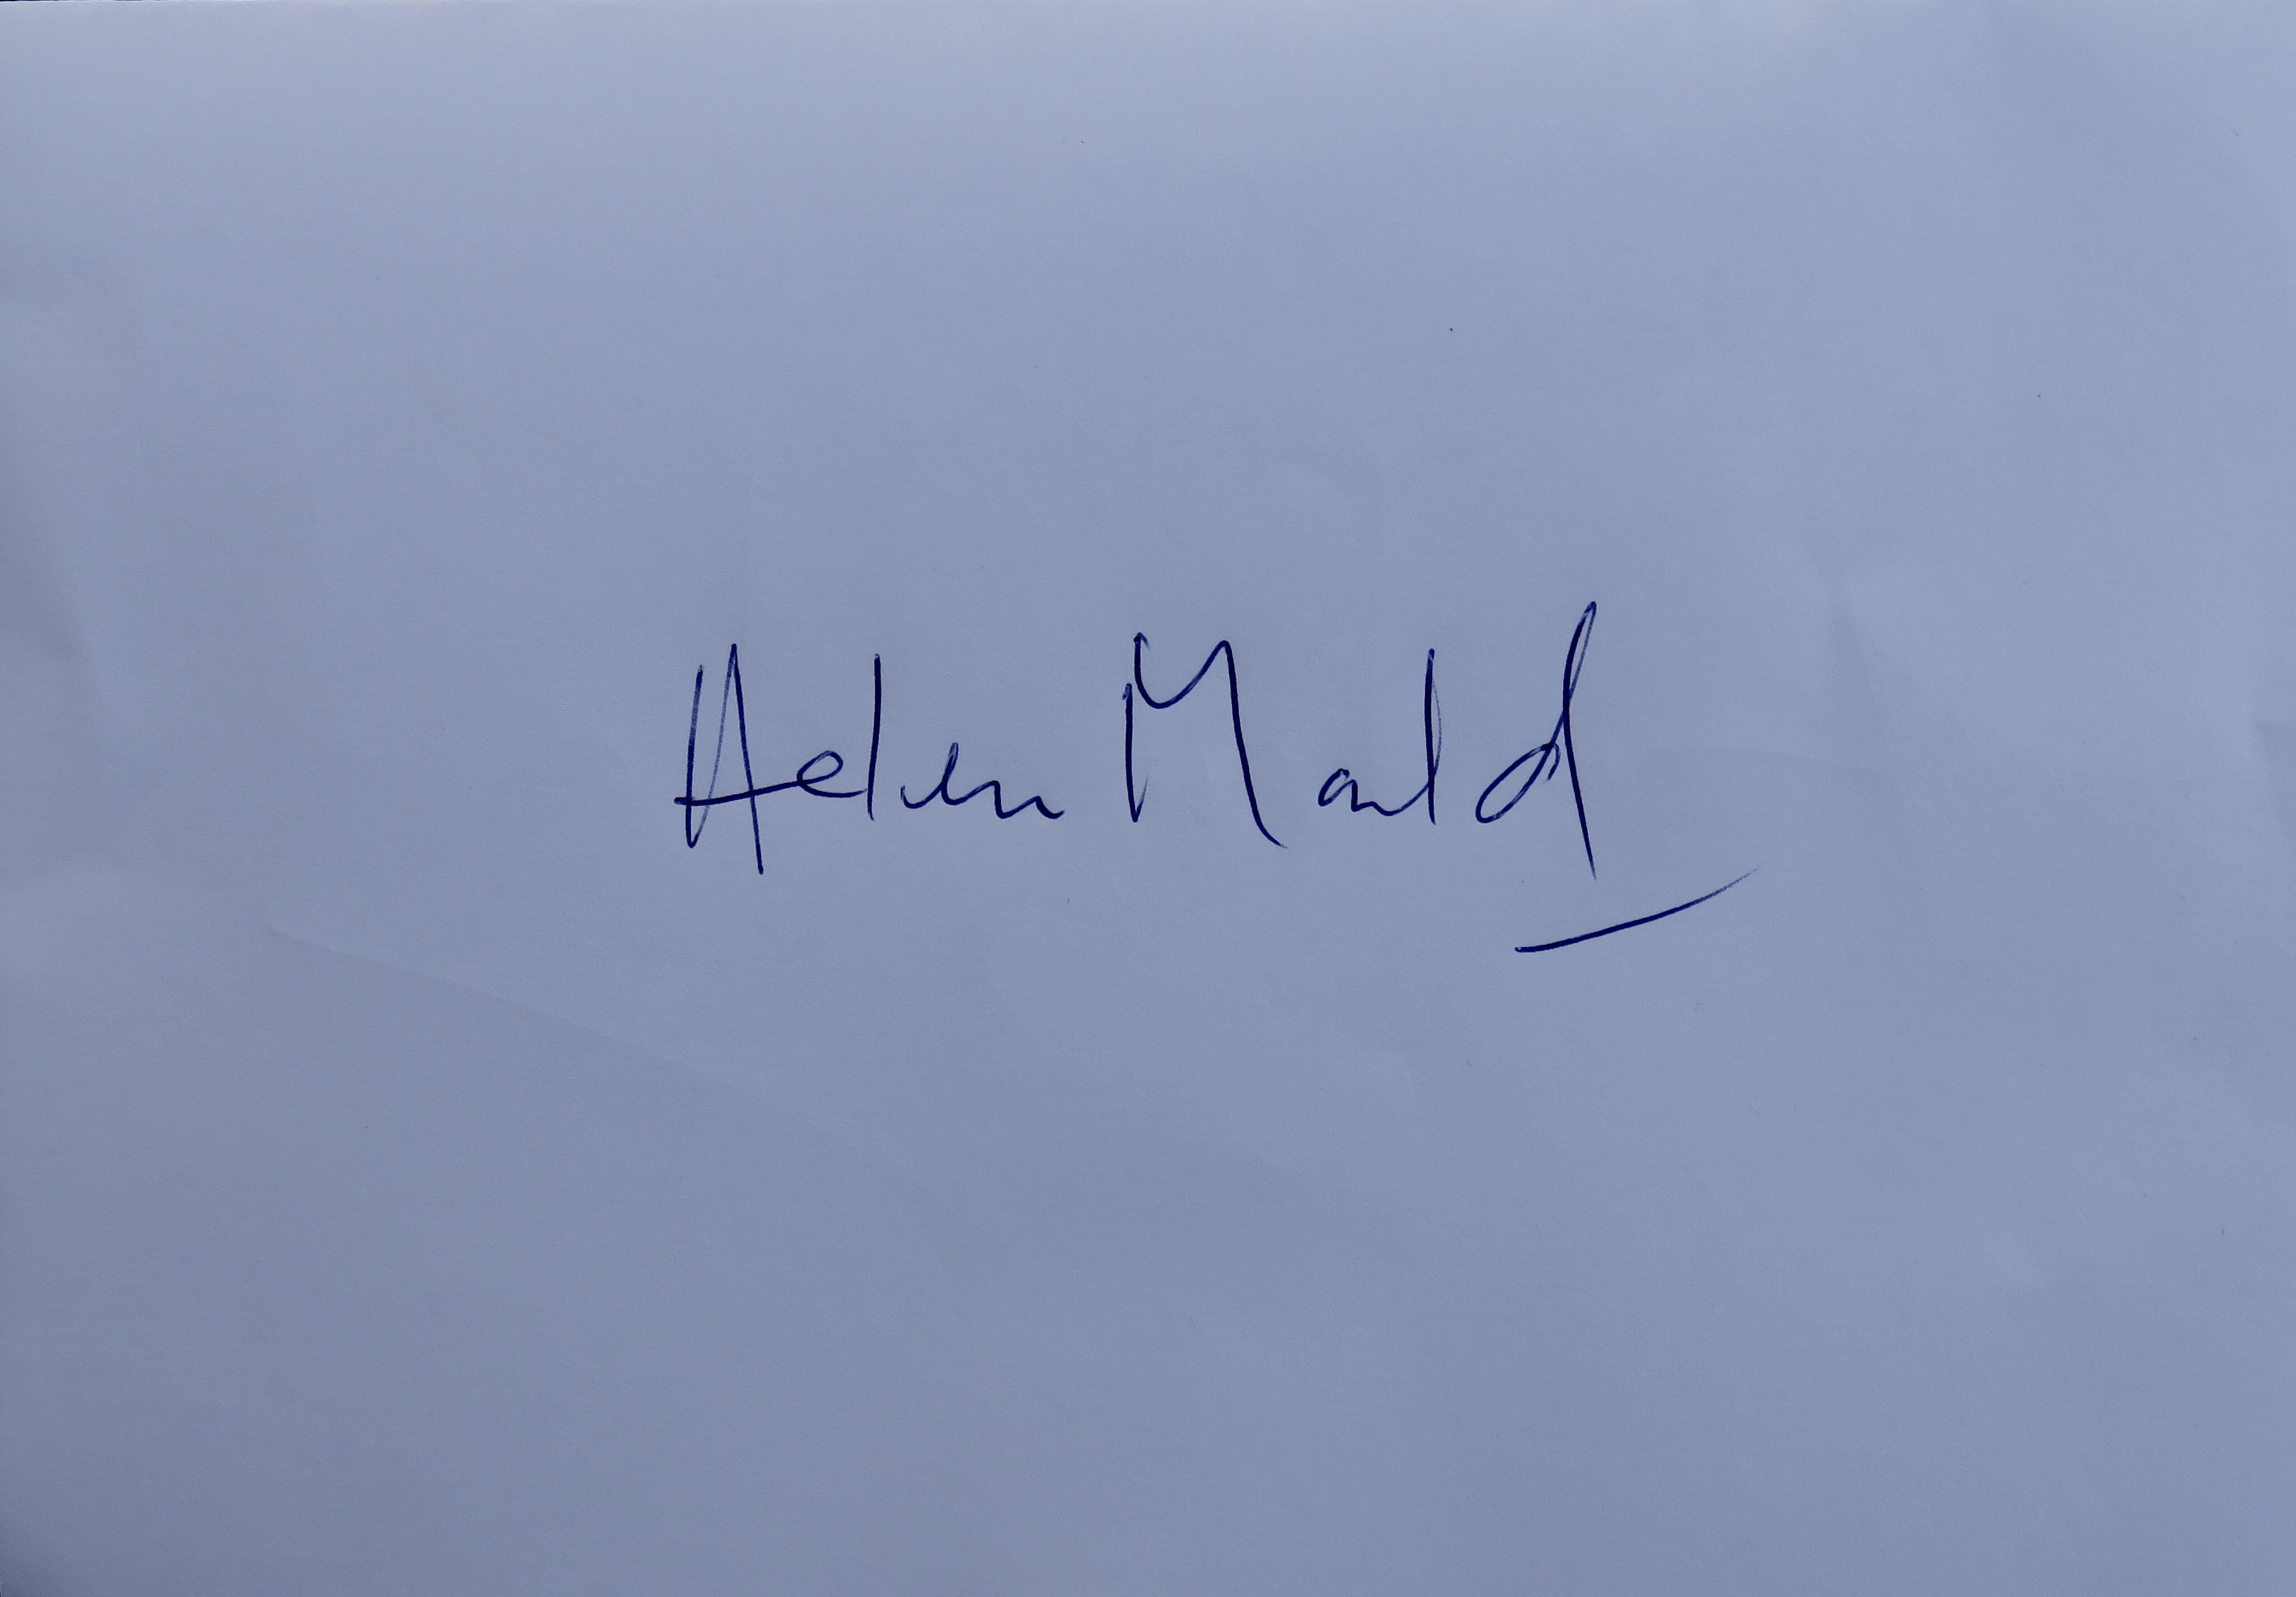 Helen Mould's Signature